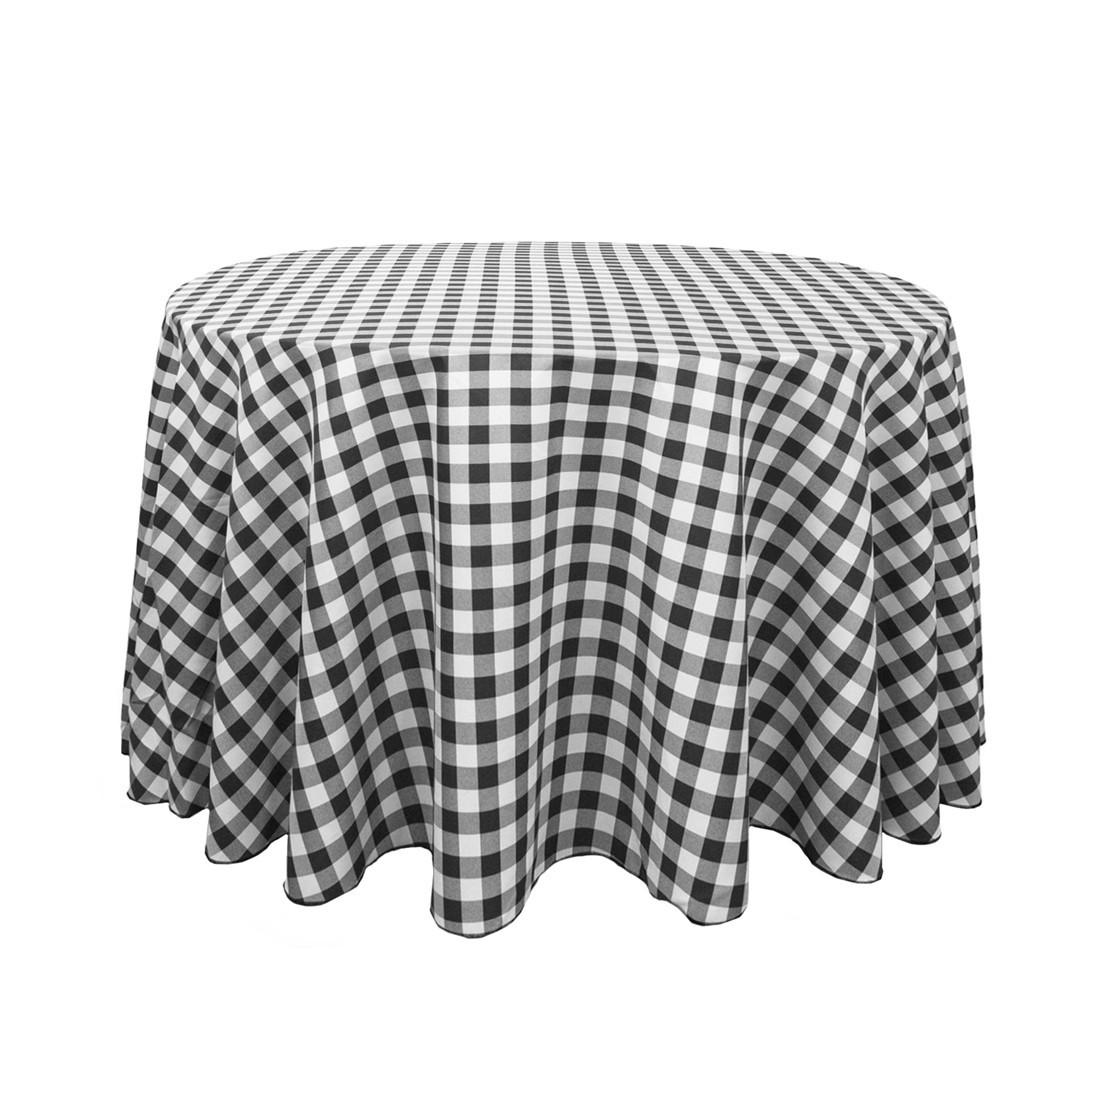 Black Gingham Tablecloth Home Design Ideas